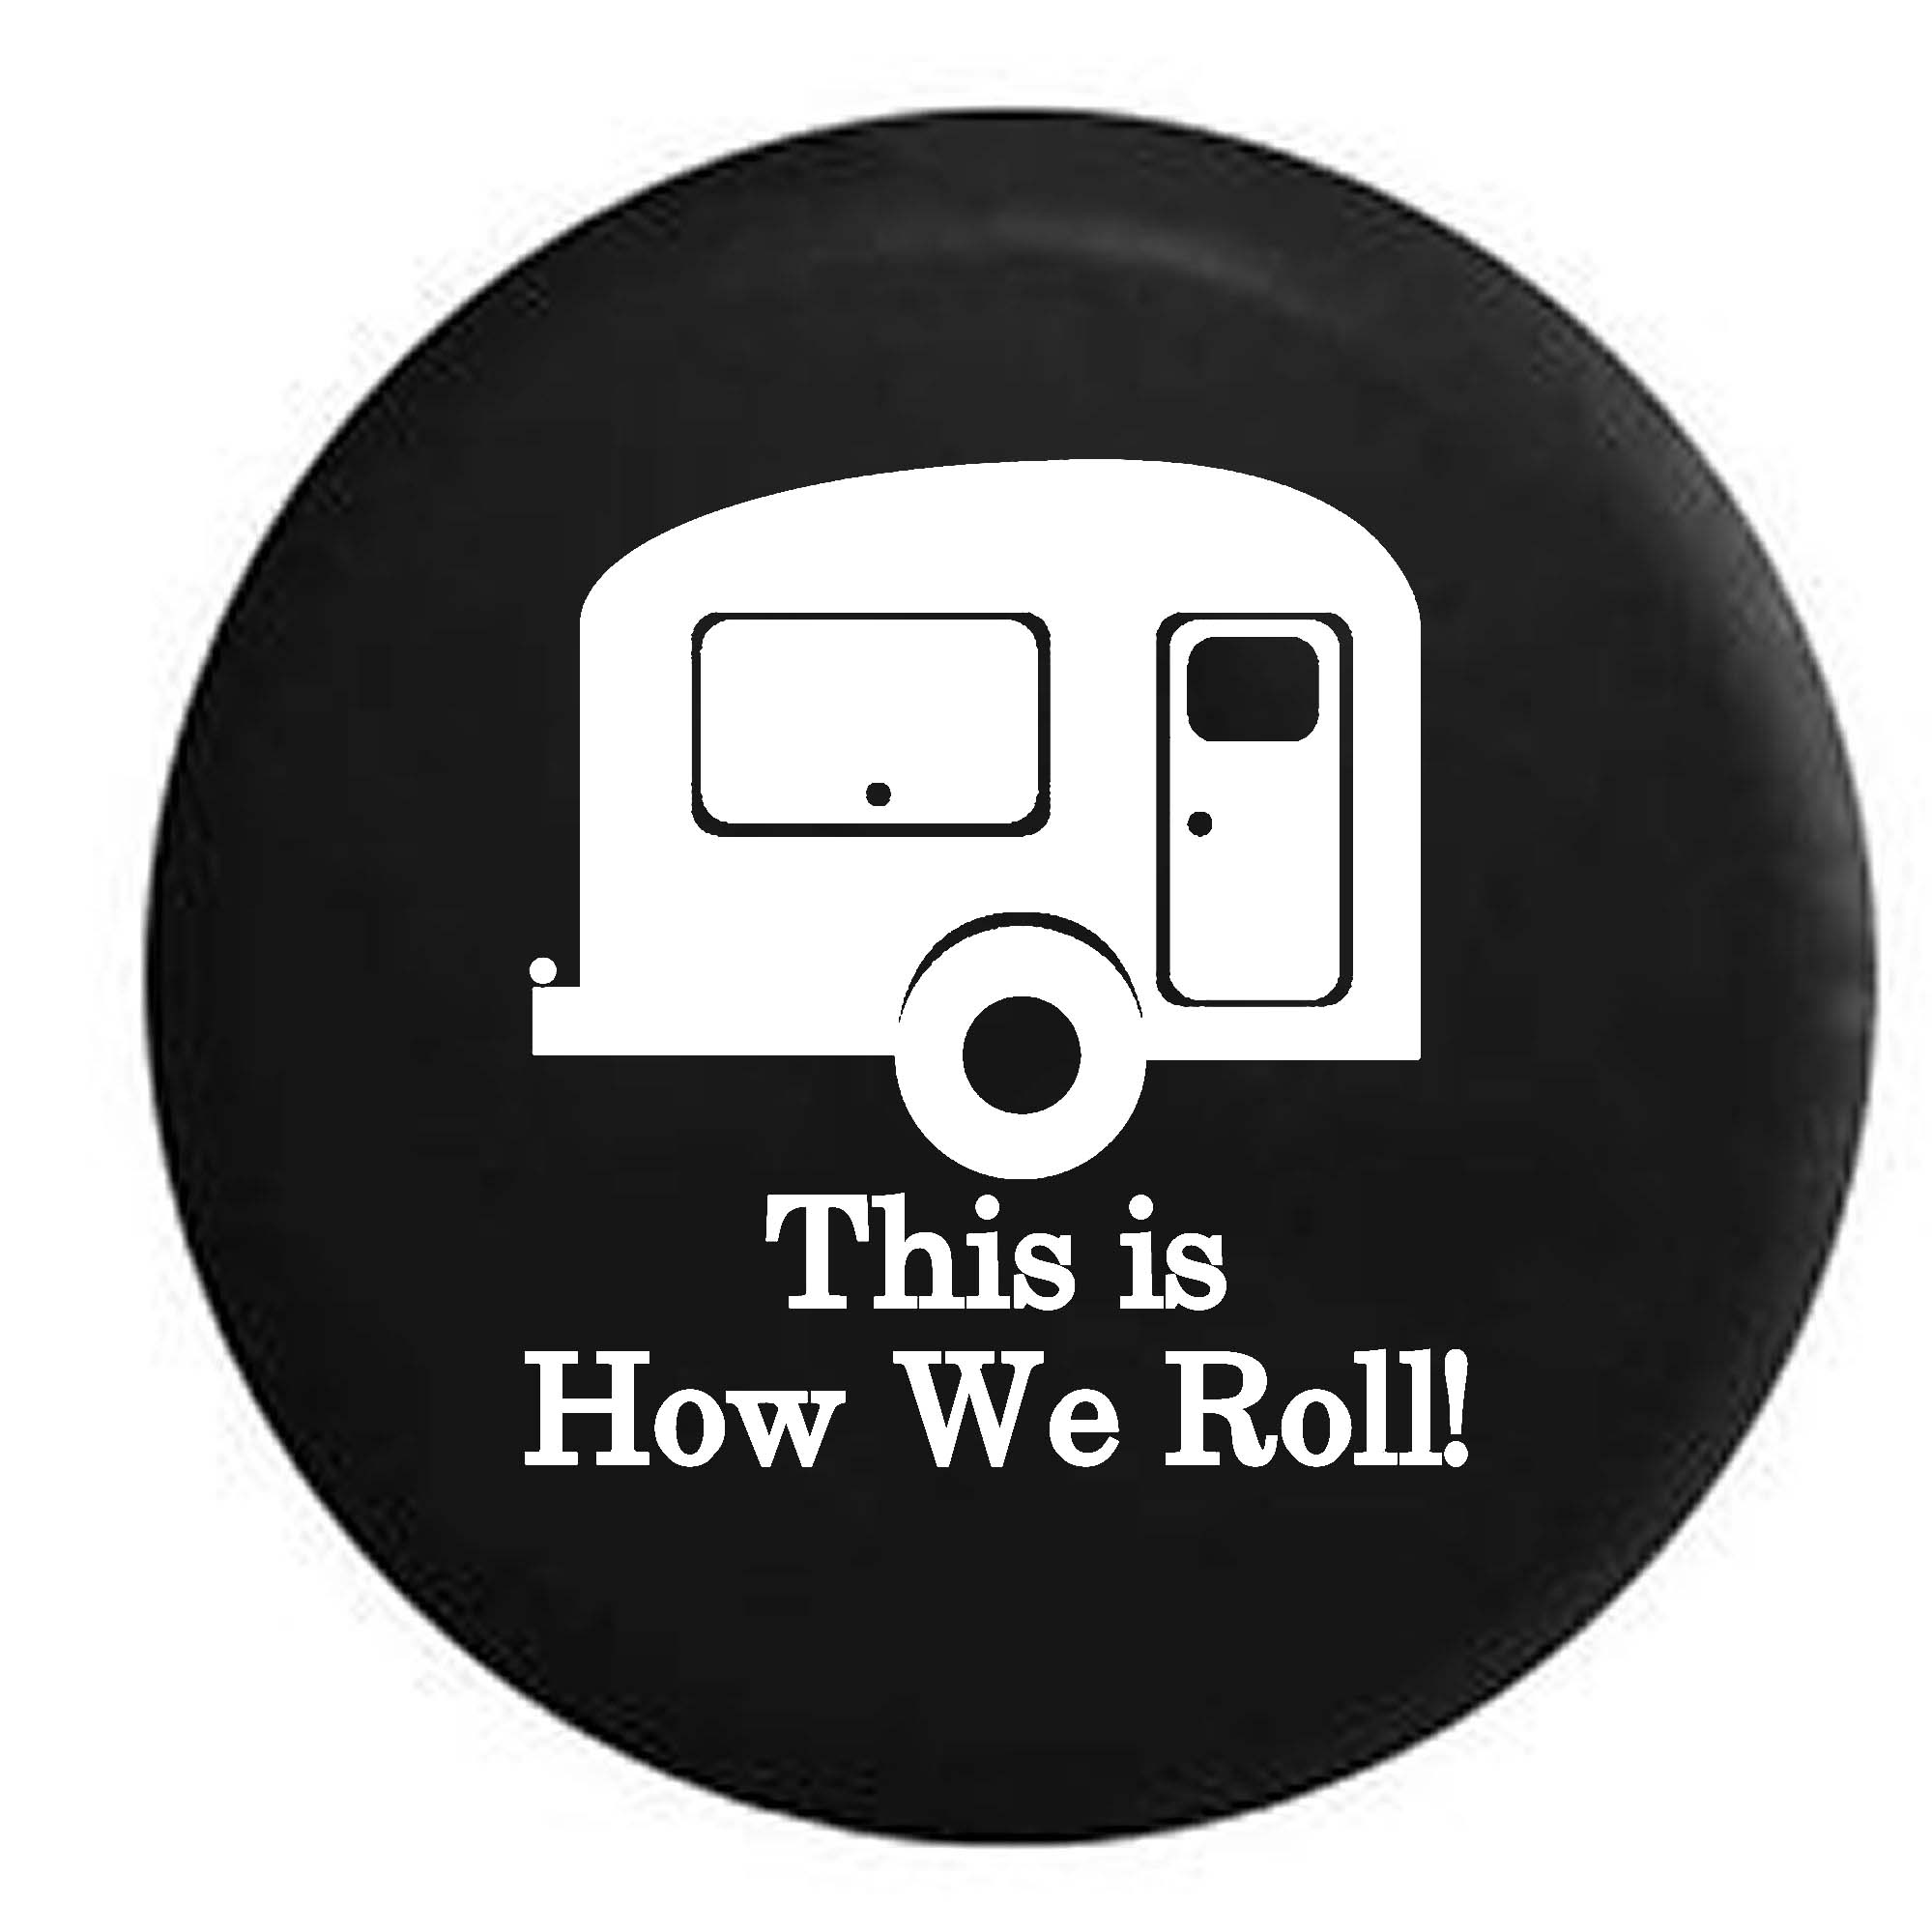 This is How We Roll TravelCamper Trailer Spare Tire Cover Vinyl Black 27.5 in